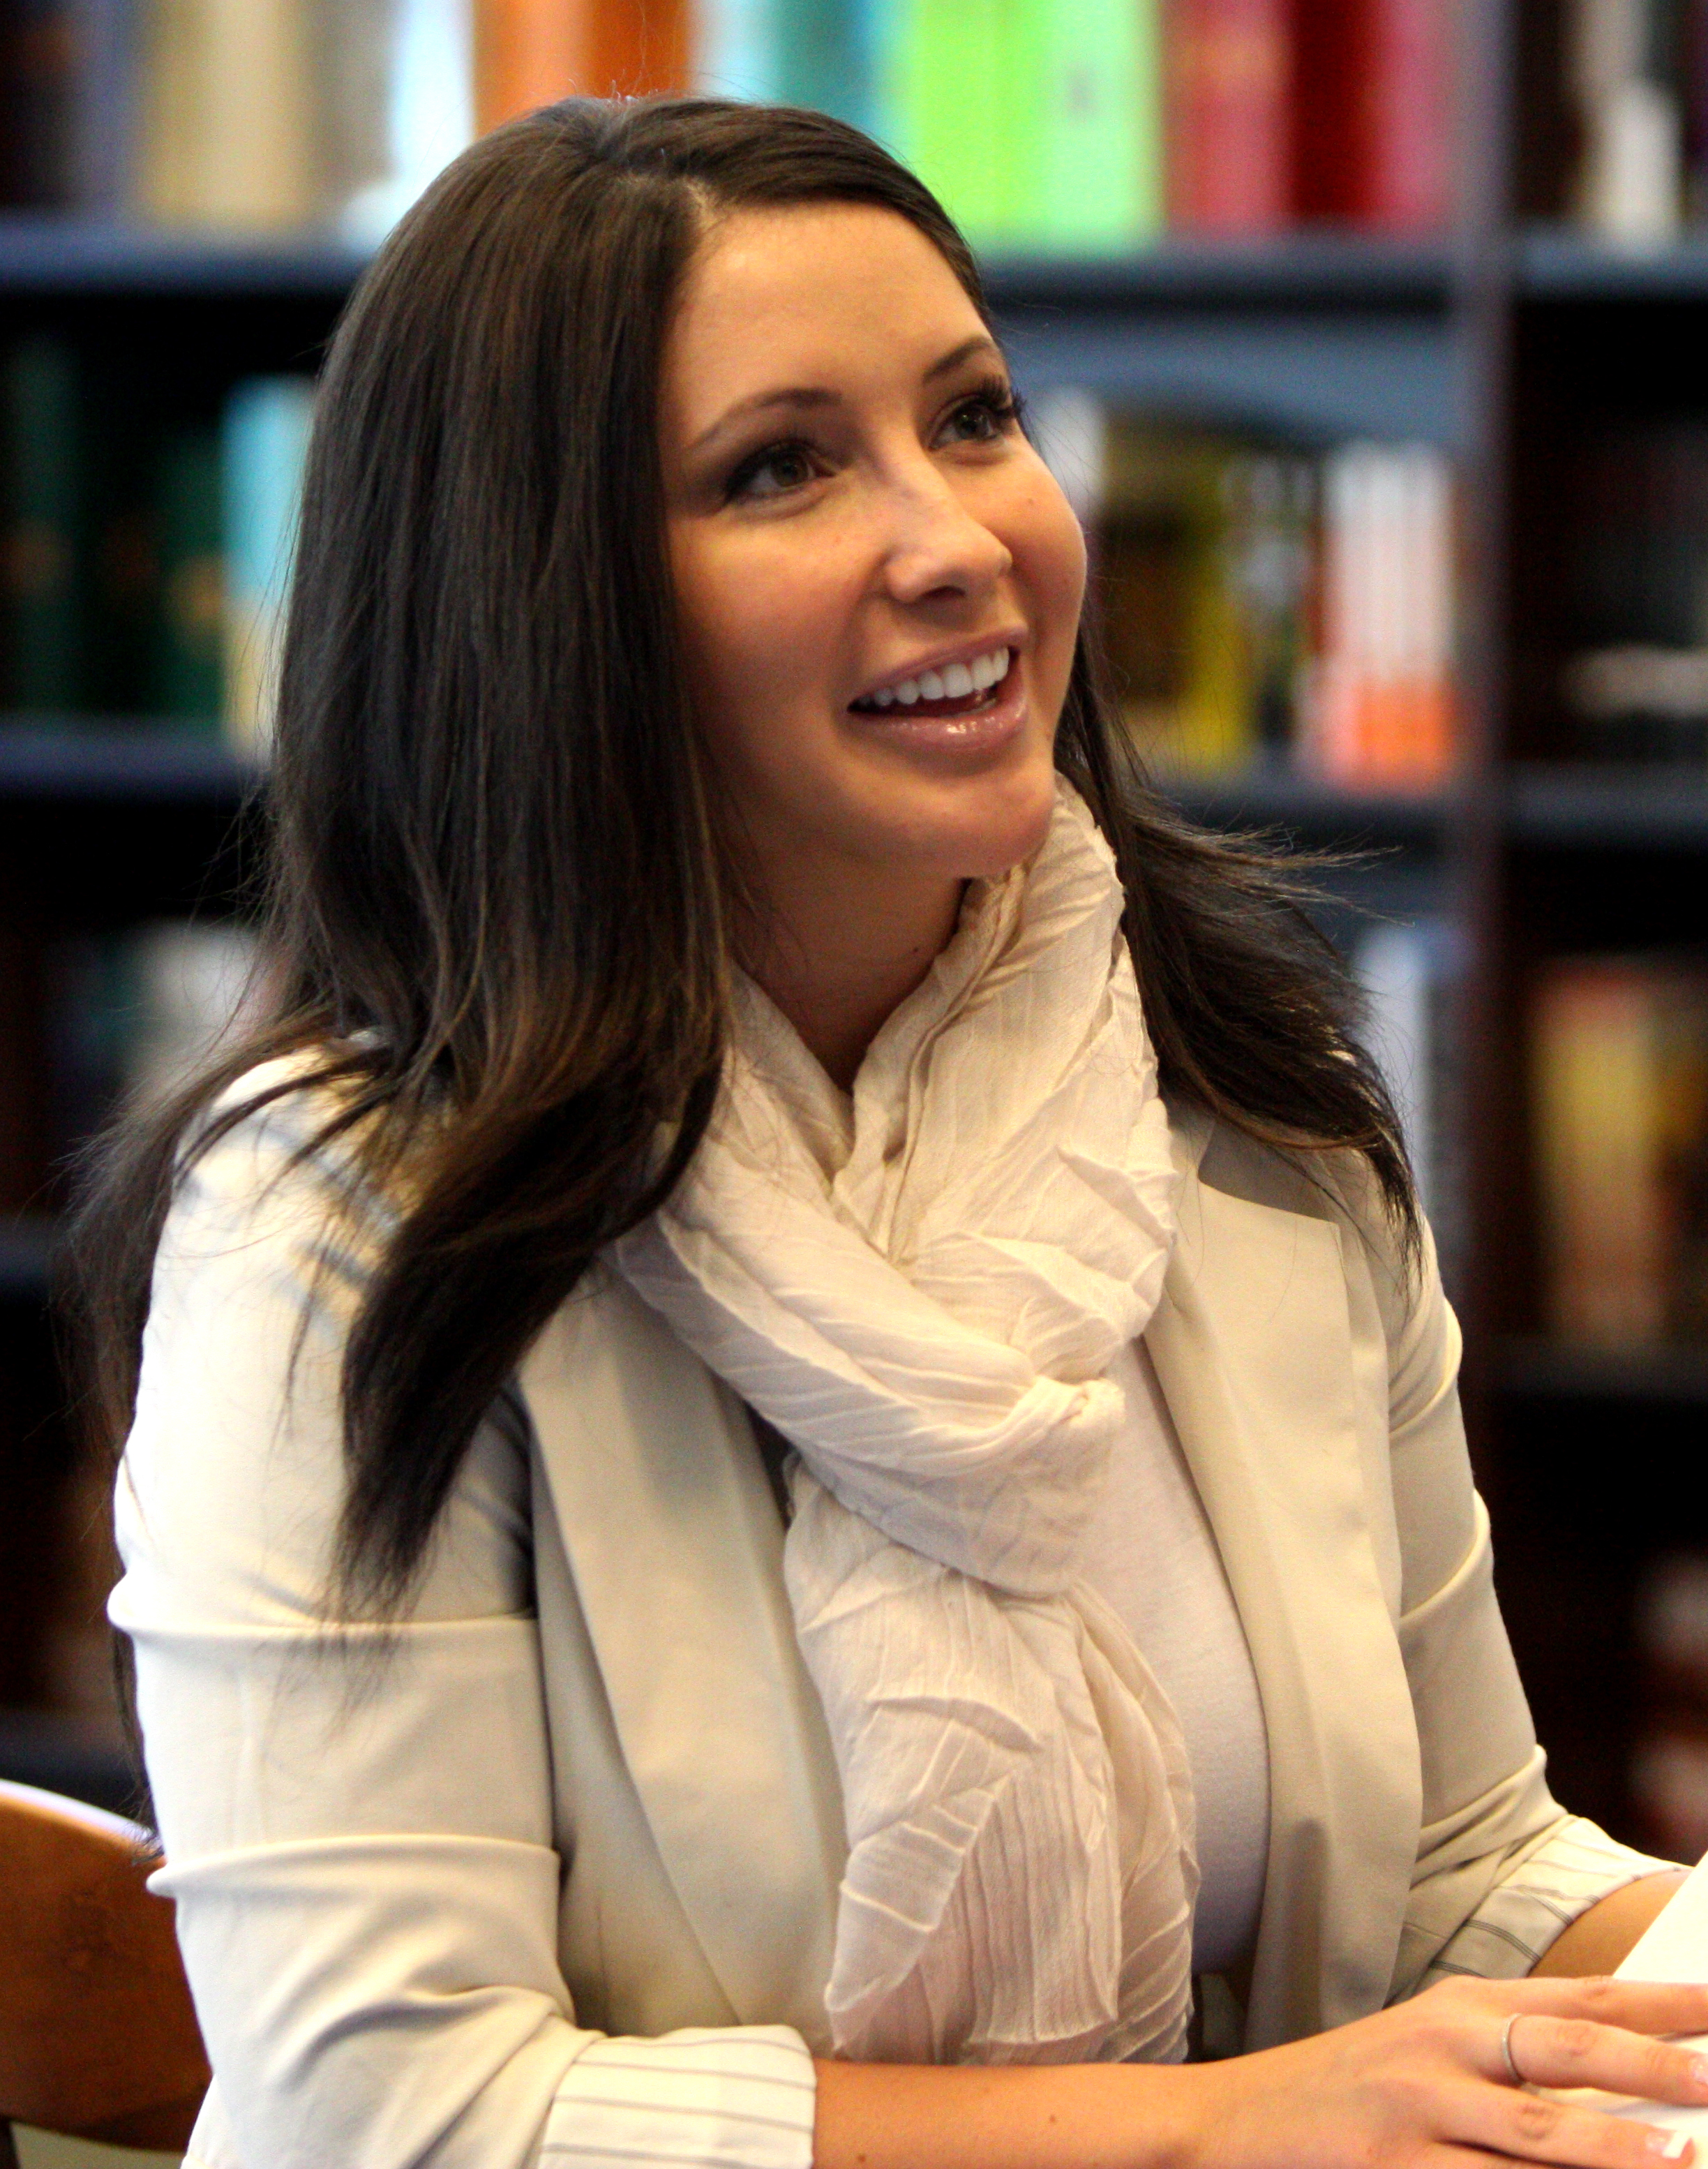 File:Bristol Palin by Gage Skidmore 4.jpg - Wikimedia Commons